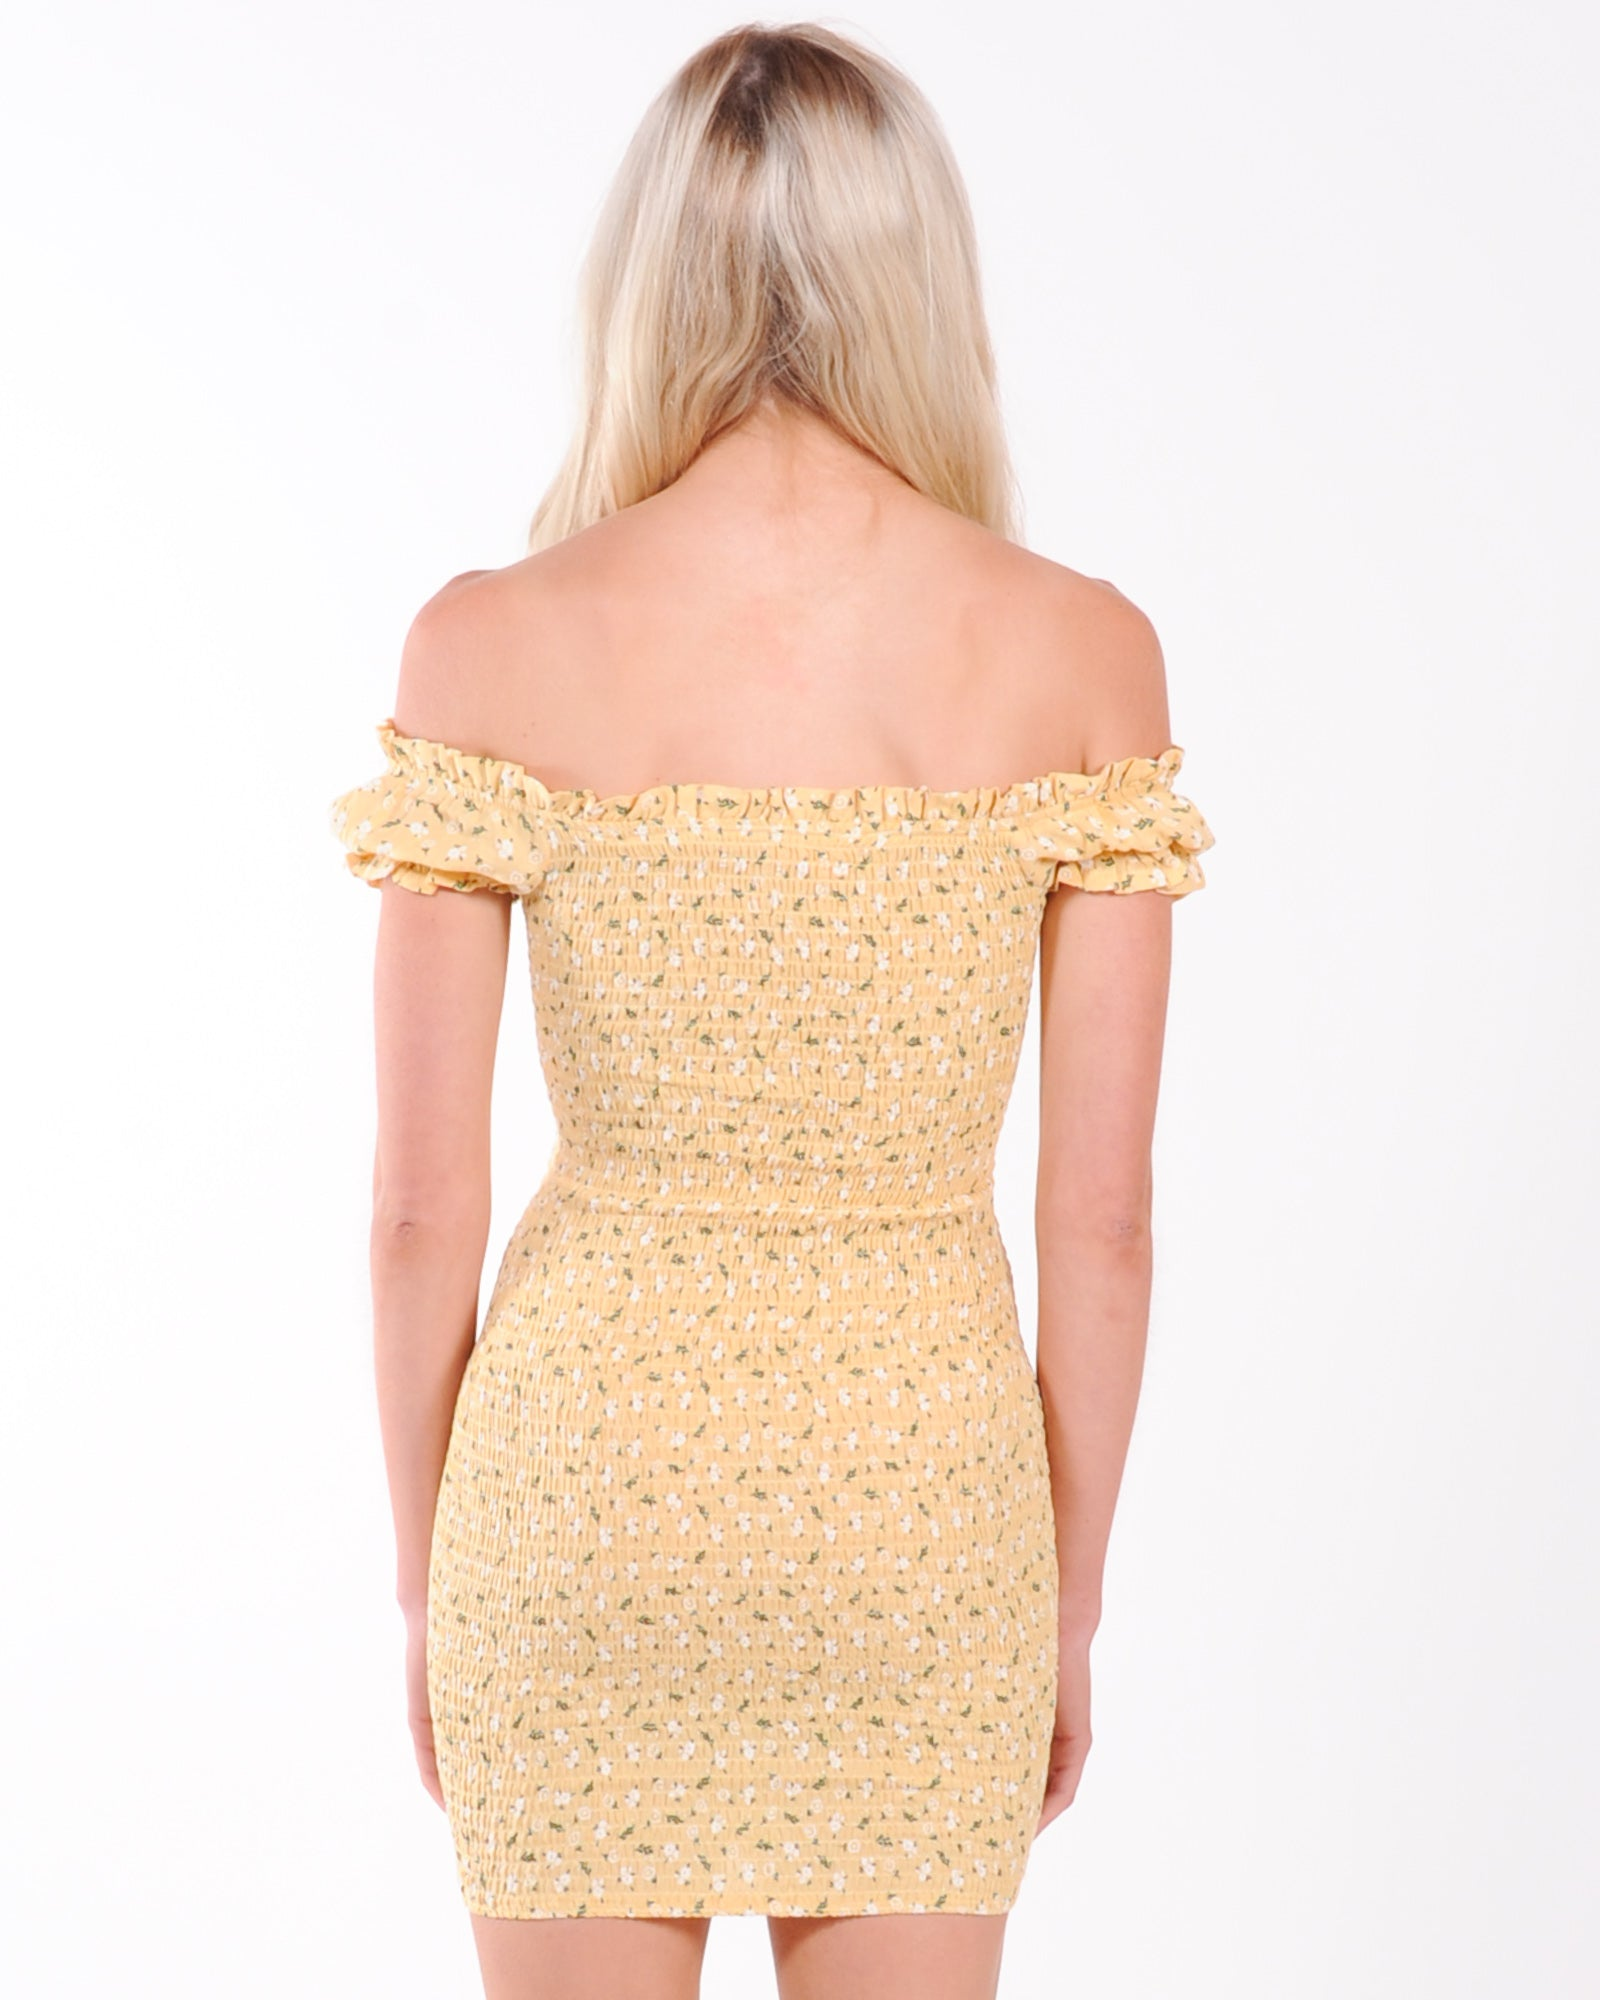 Alexis Floral Mini Dress - Yellow